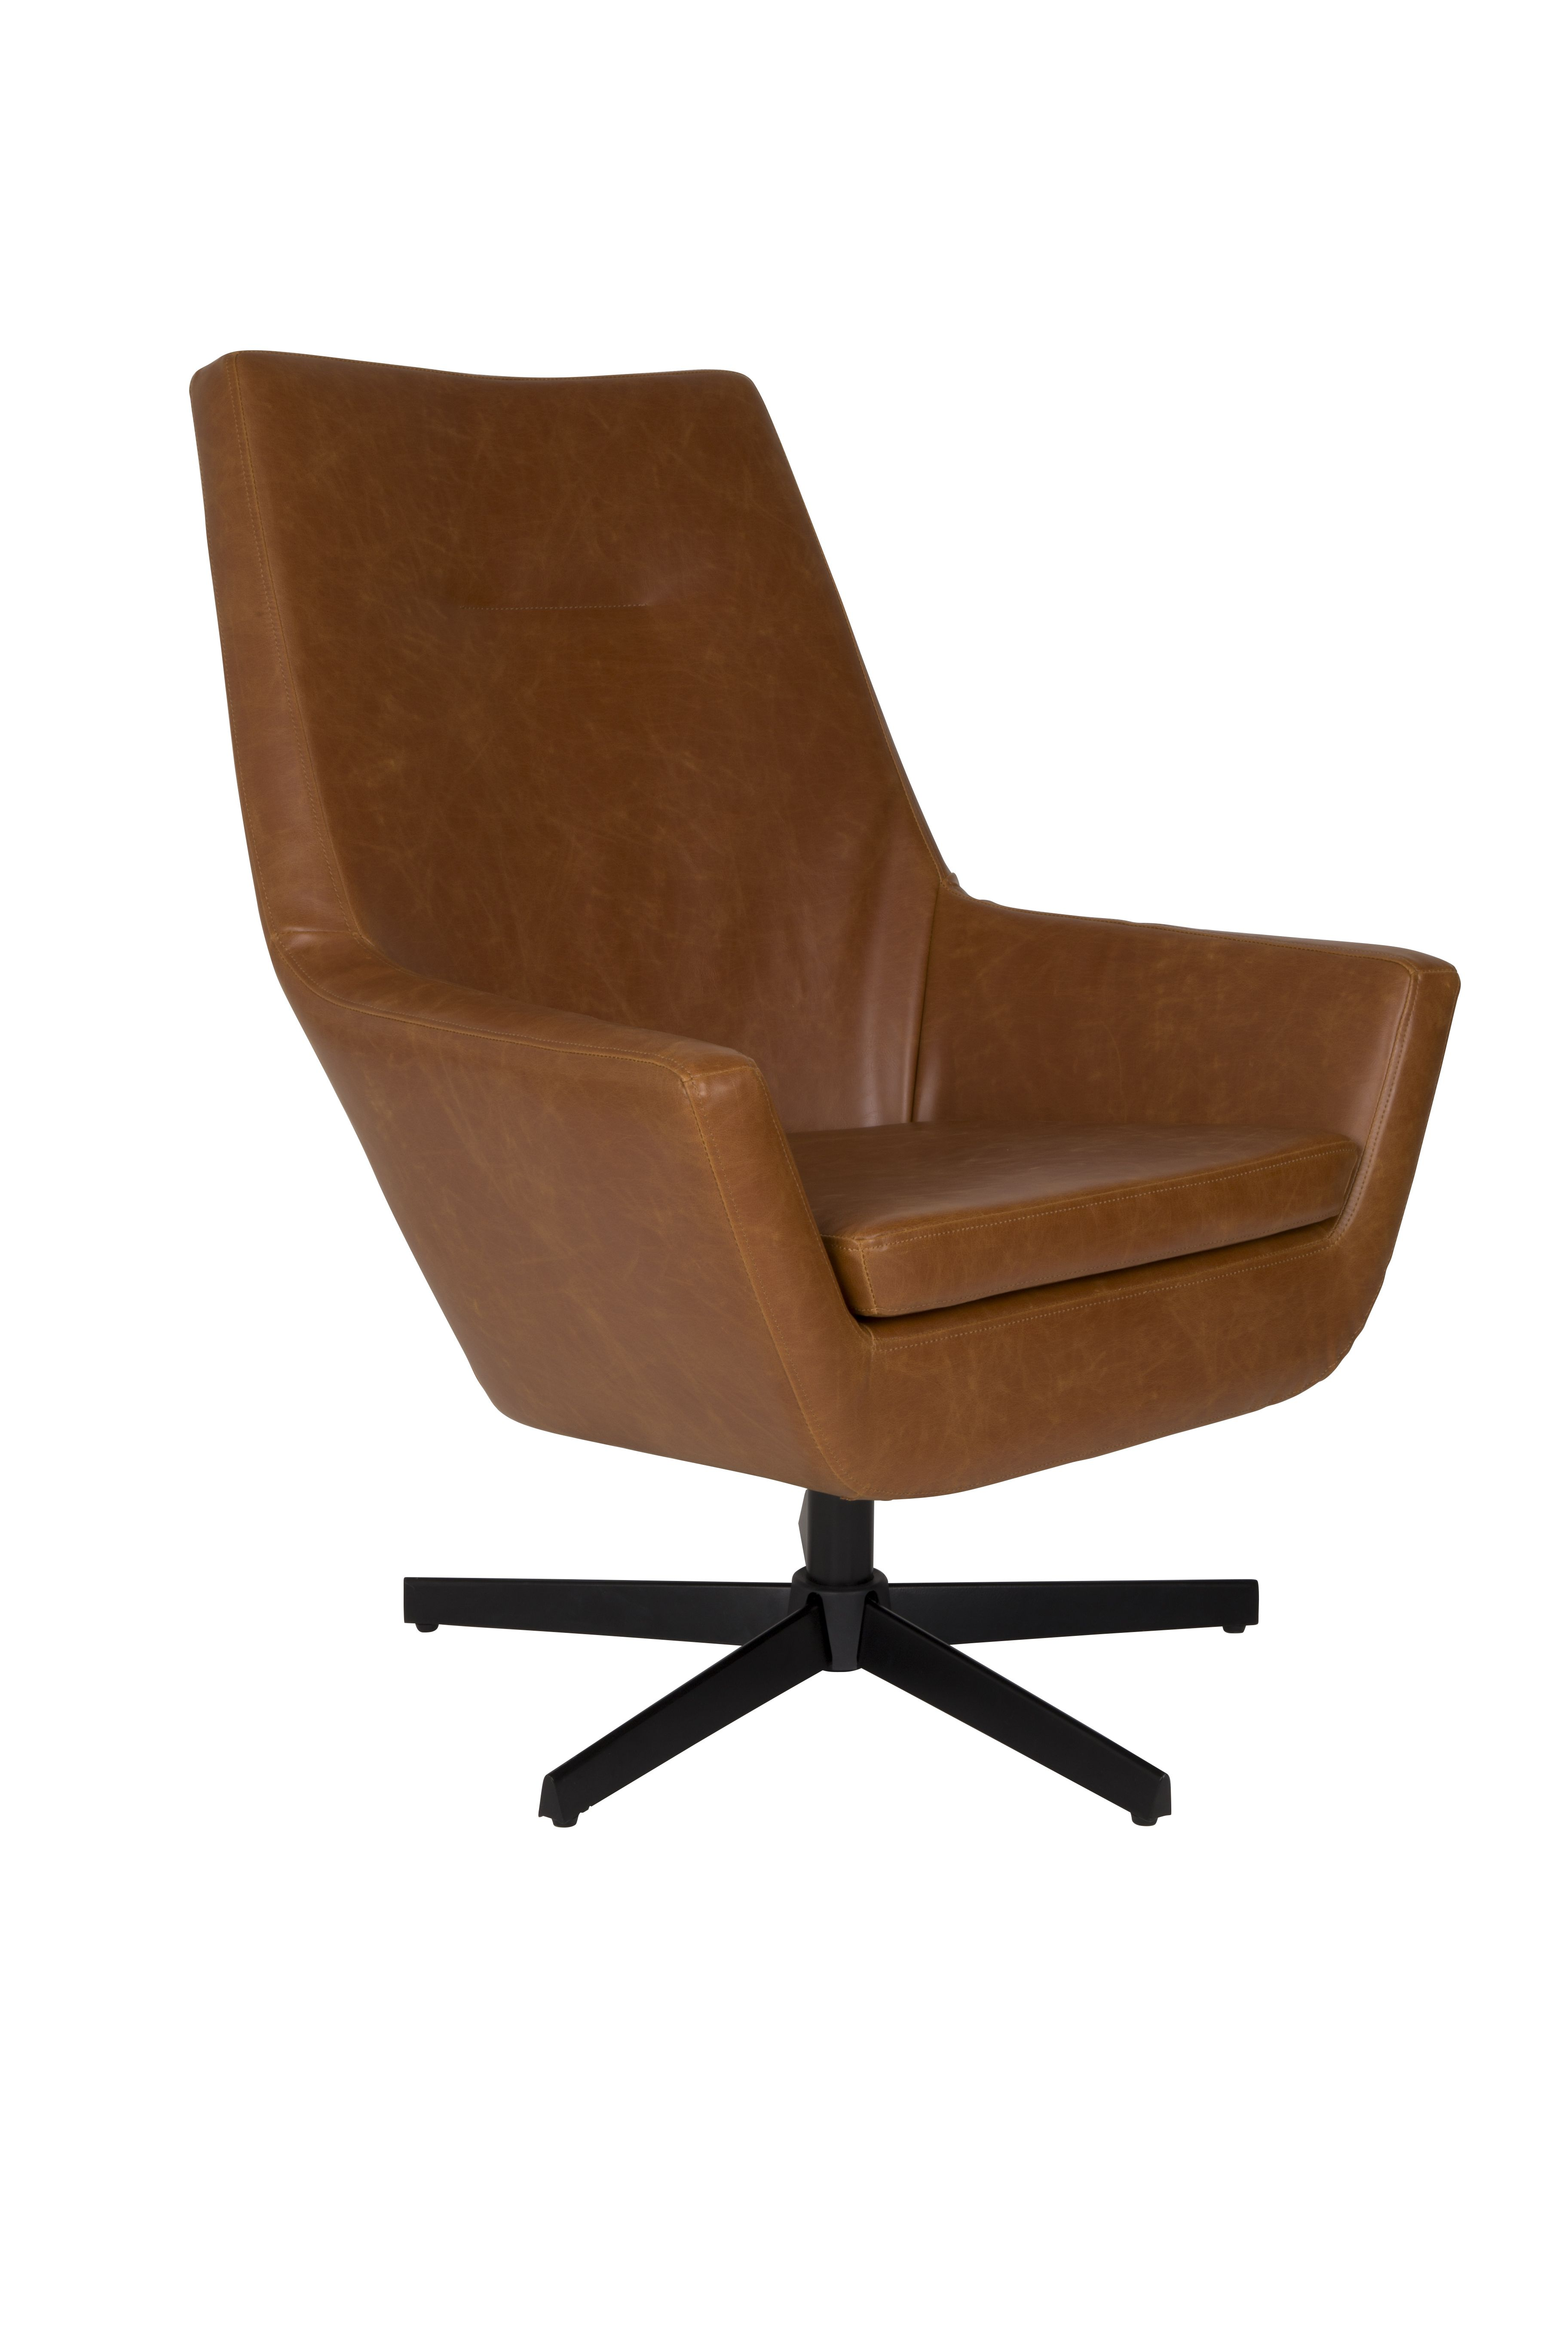 Woonkamer Reza Don Lounge Chair Woonkamer Sessel Lounge Sessel Lounge Chair